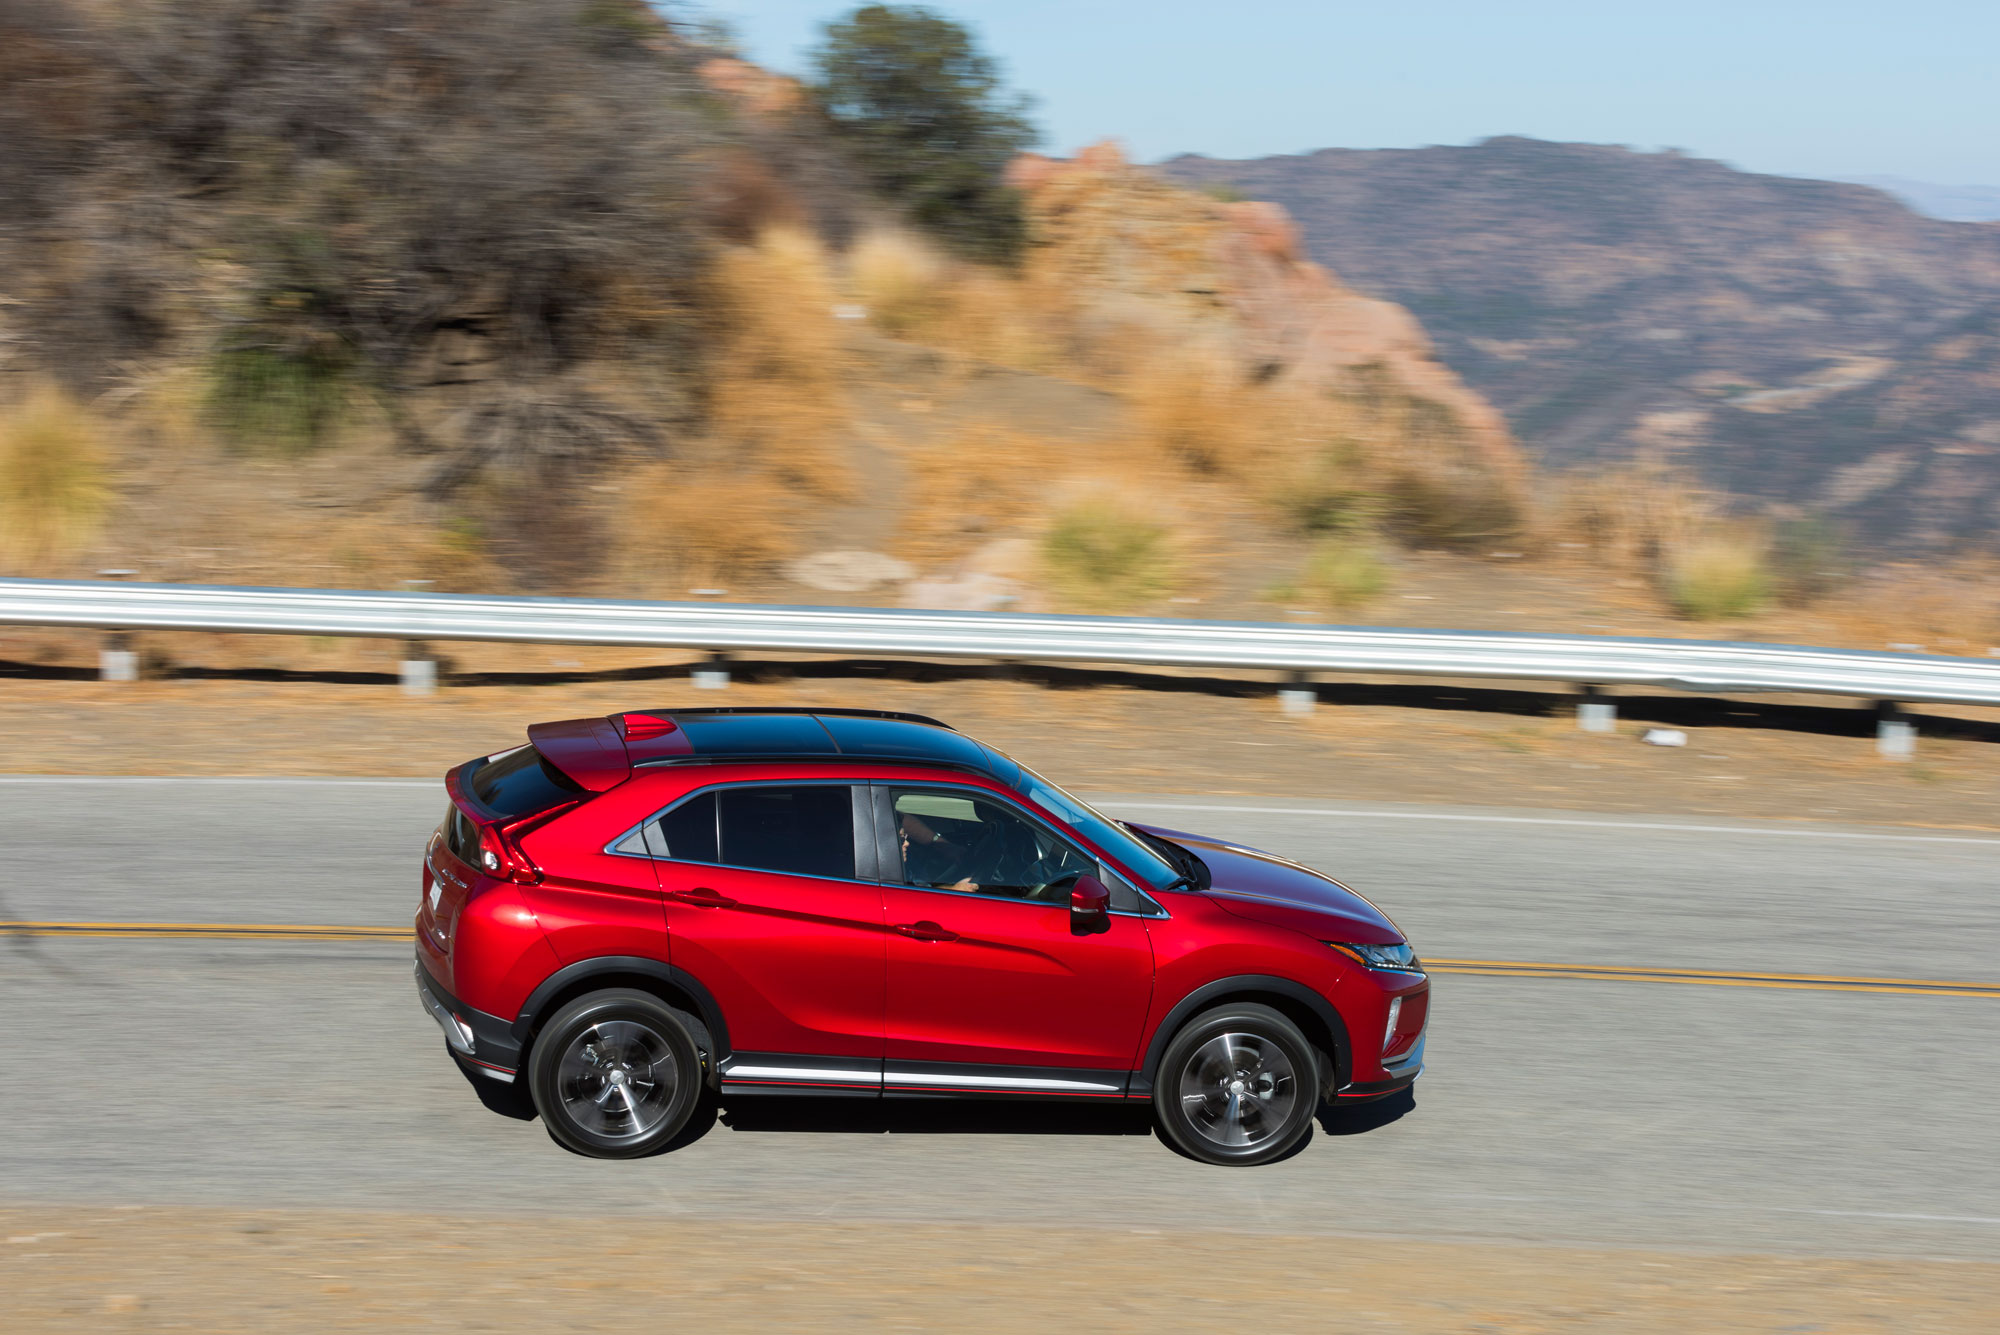 2018 Mitsubishi Eclipse Cross driving